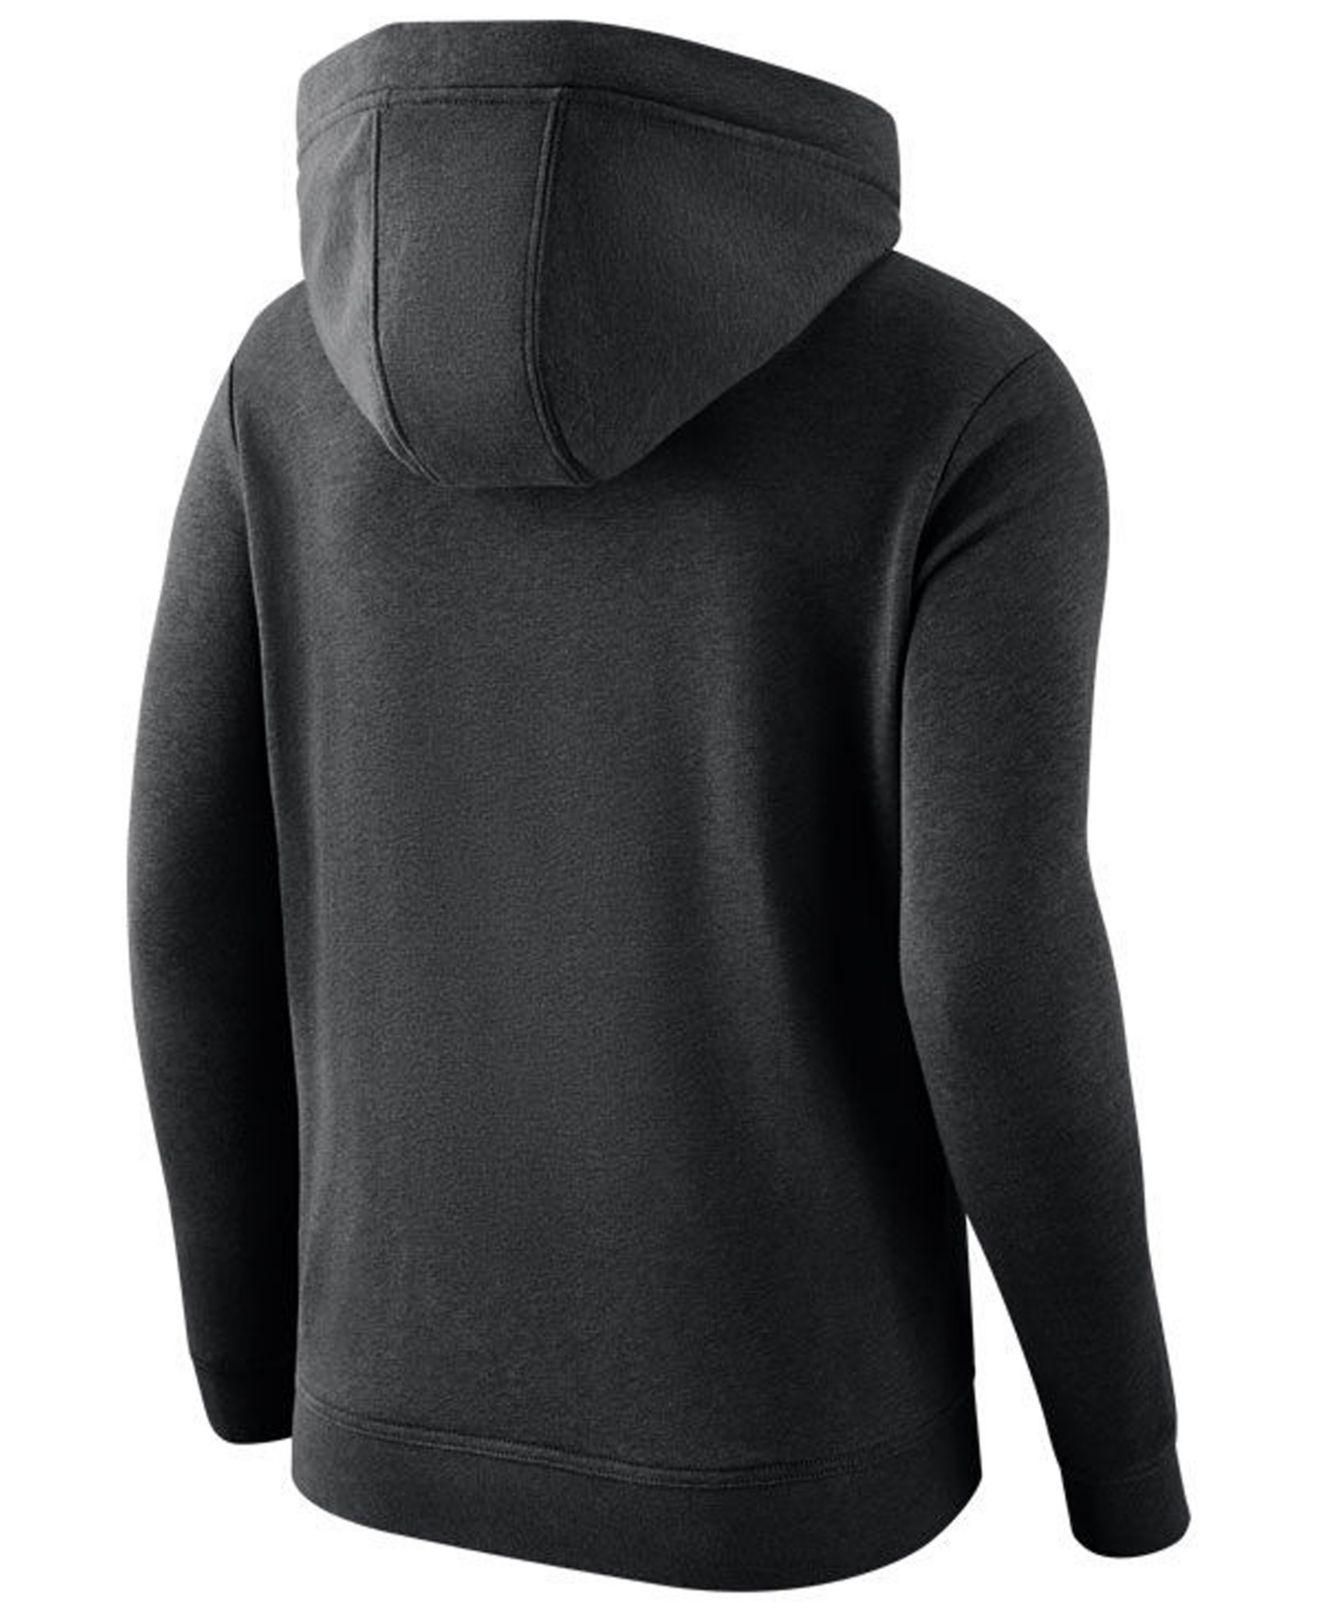 new product b6715 f7228 Lyst - Nike Carolina Panthers Club Pullover Hoodie in Black